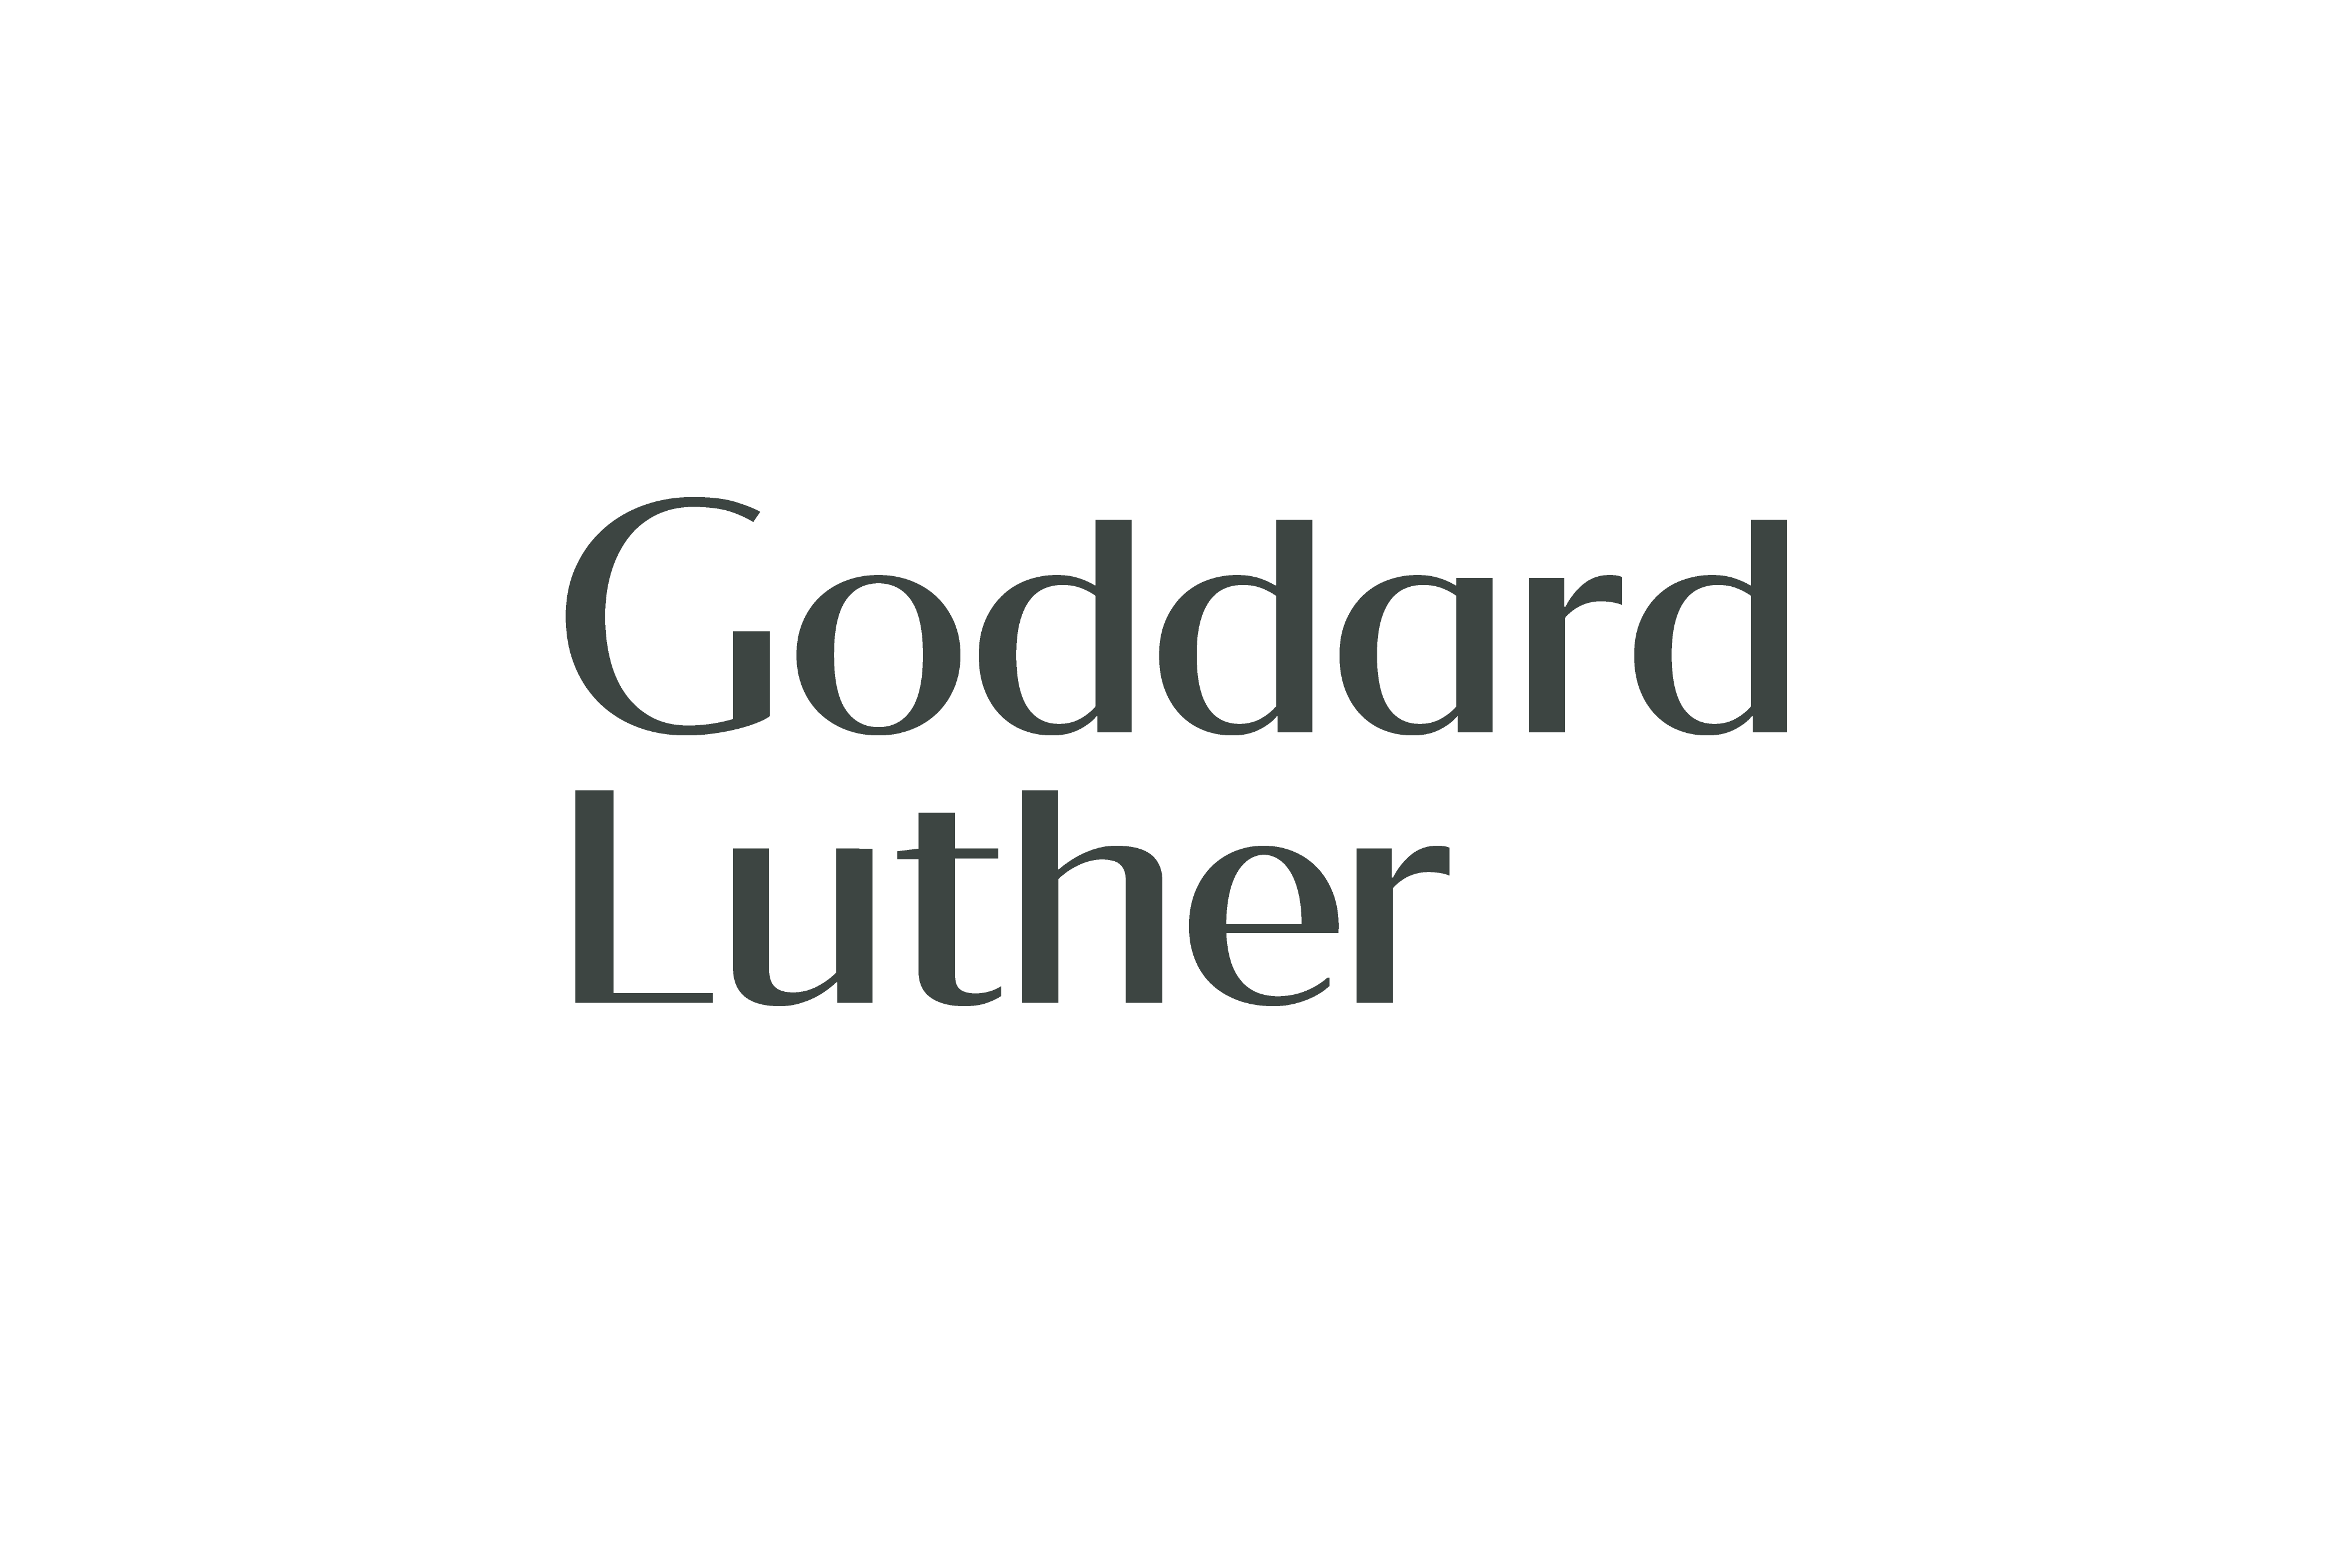 Goddard Luther